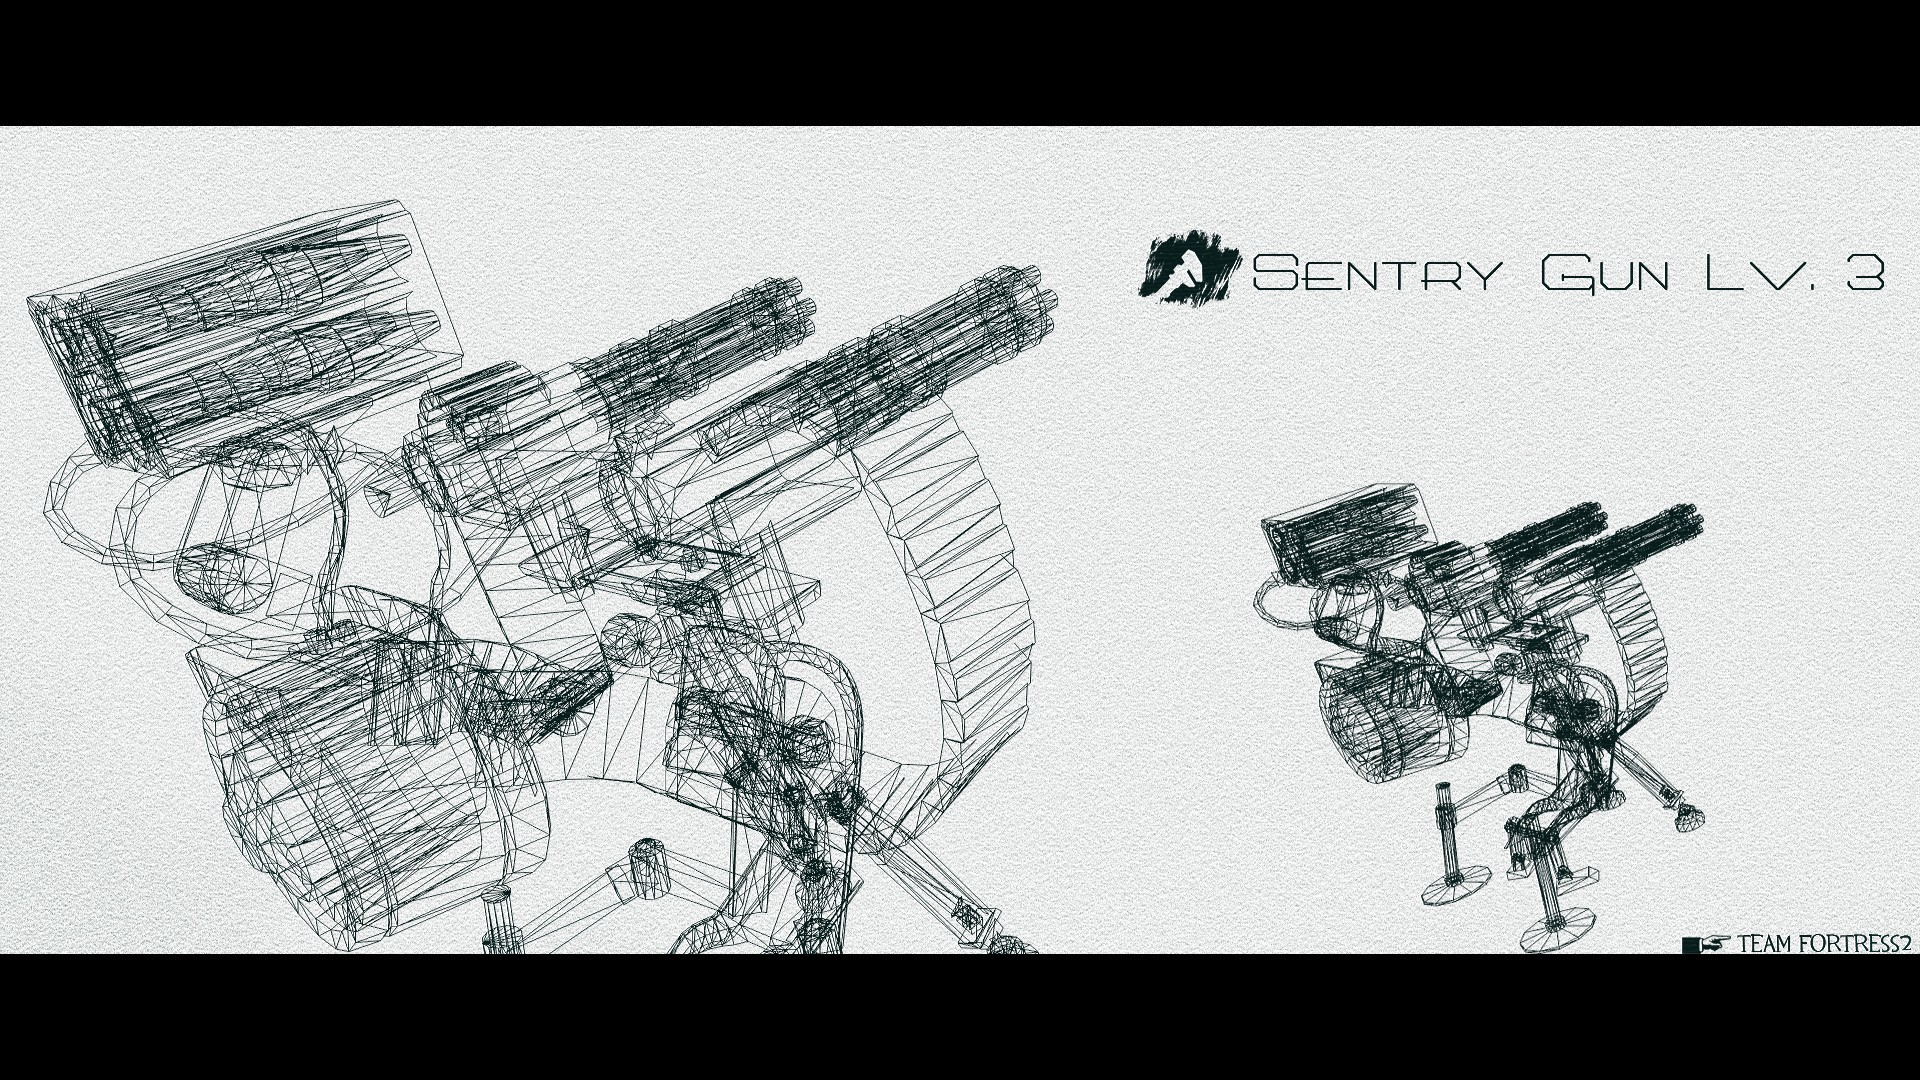 1920x1080 Sentry Gun, photo, photos, walls